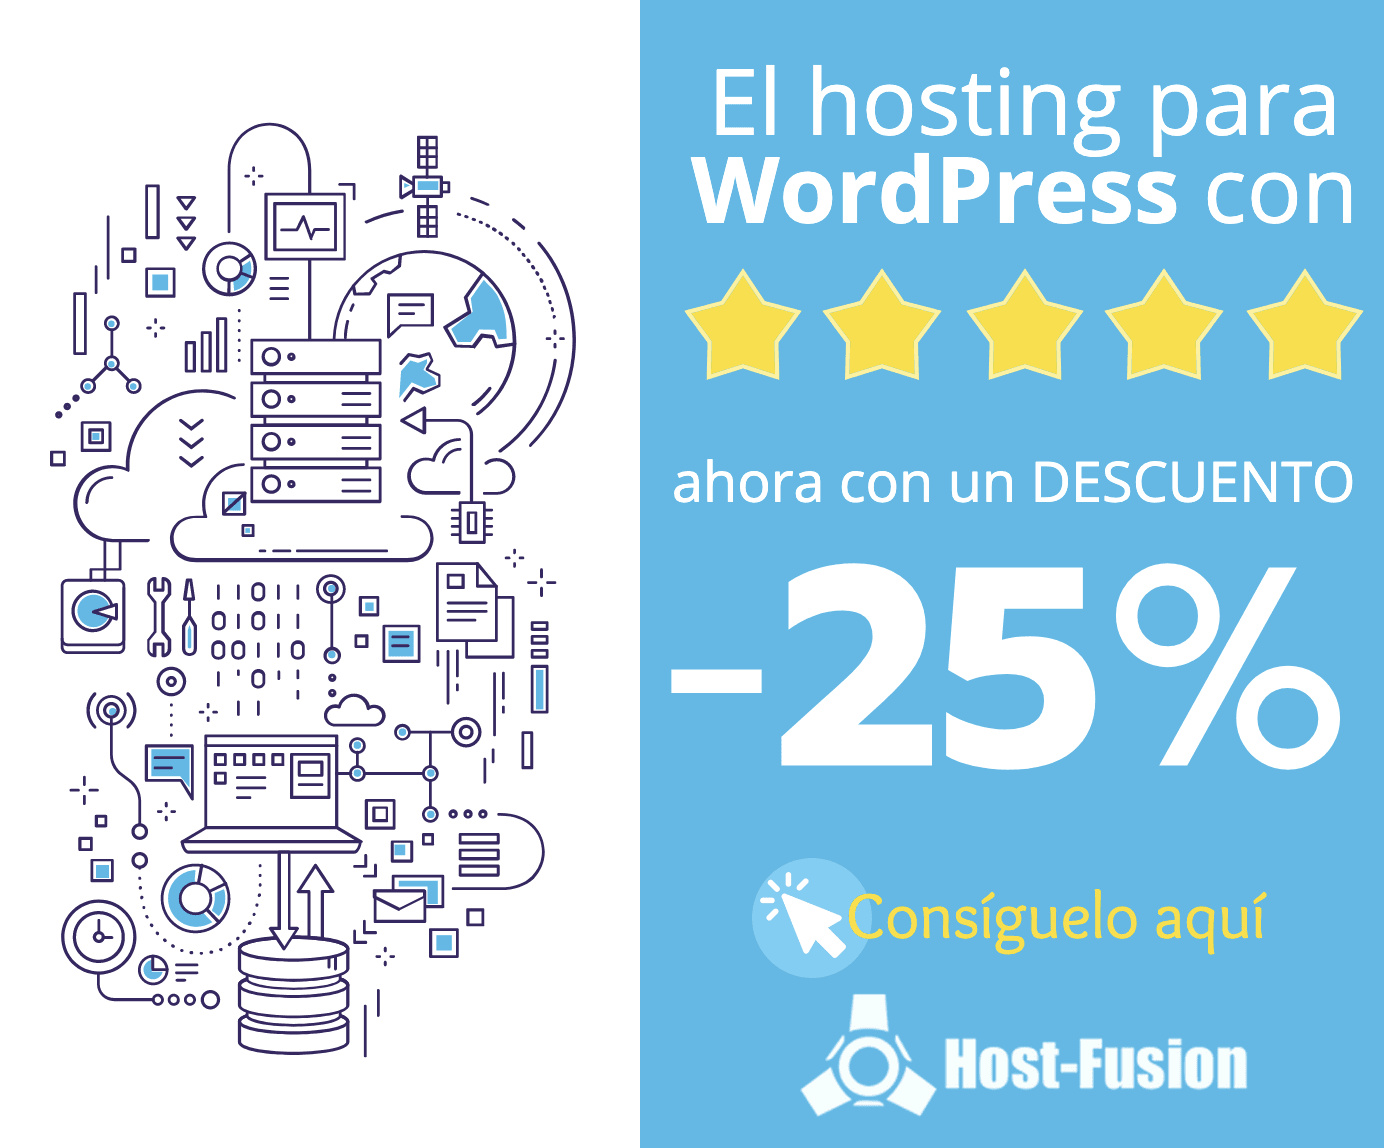 descuento-host-fusion-hosting-wordpress